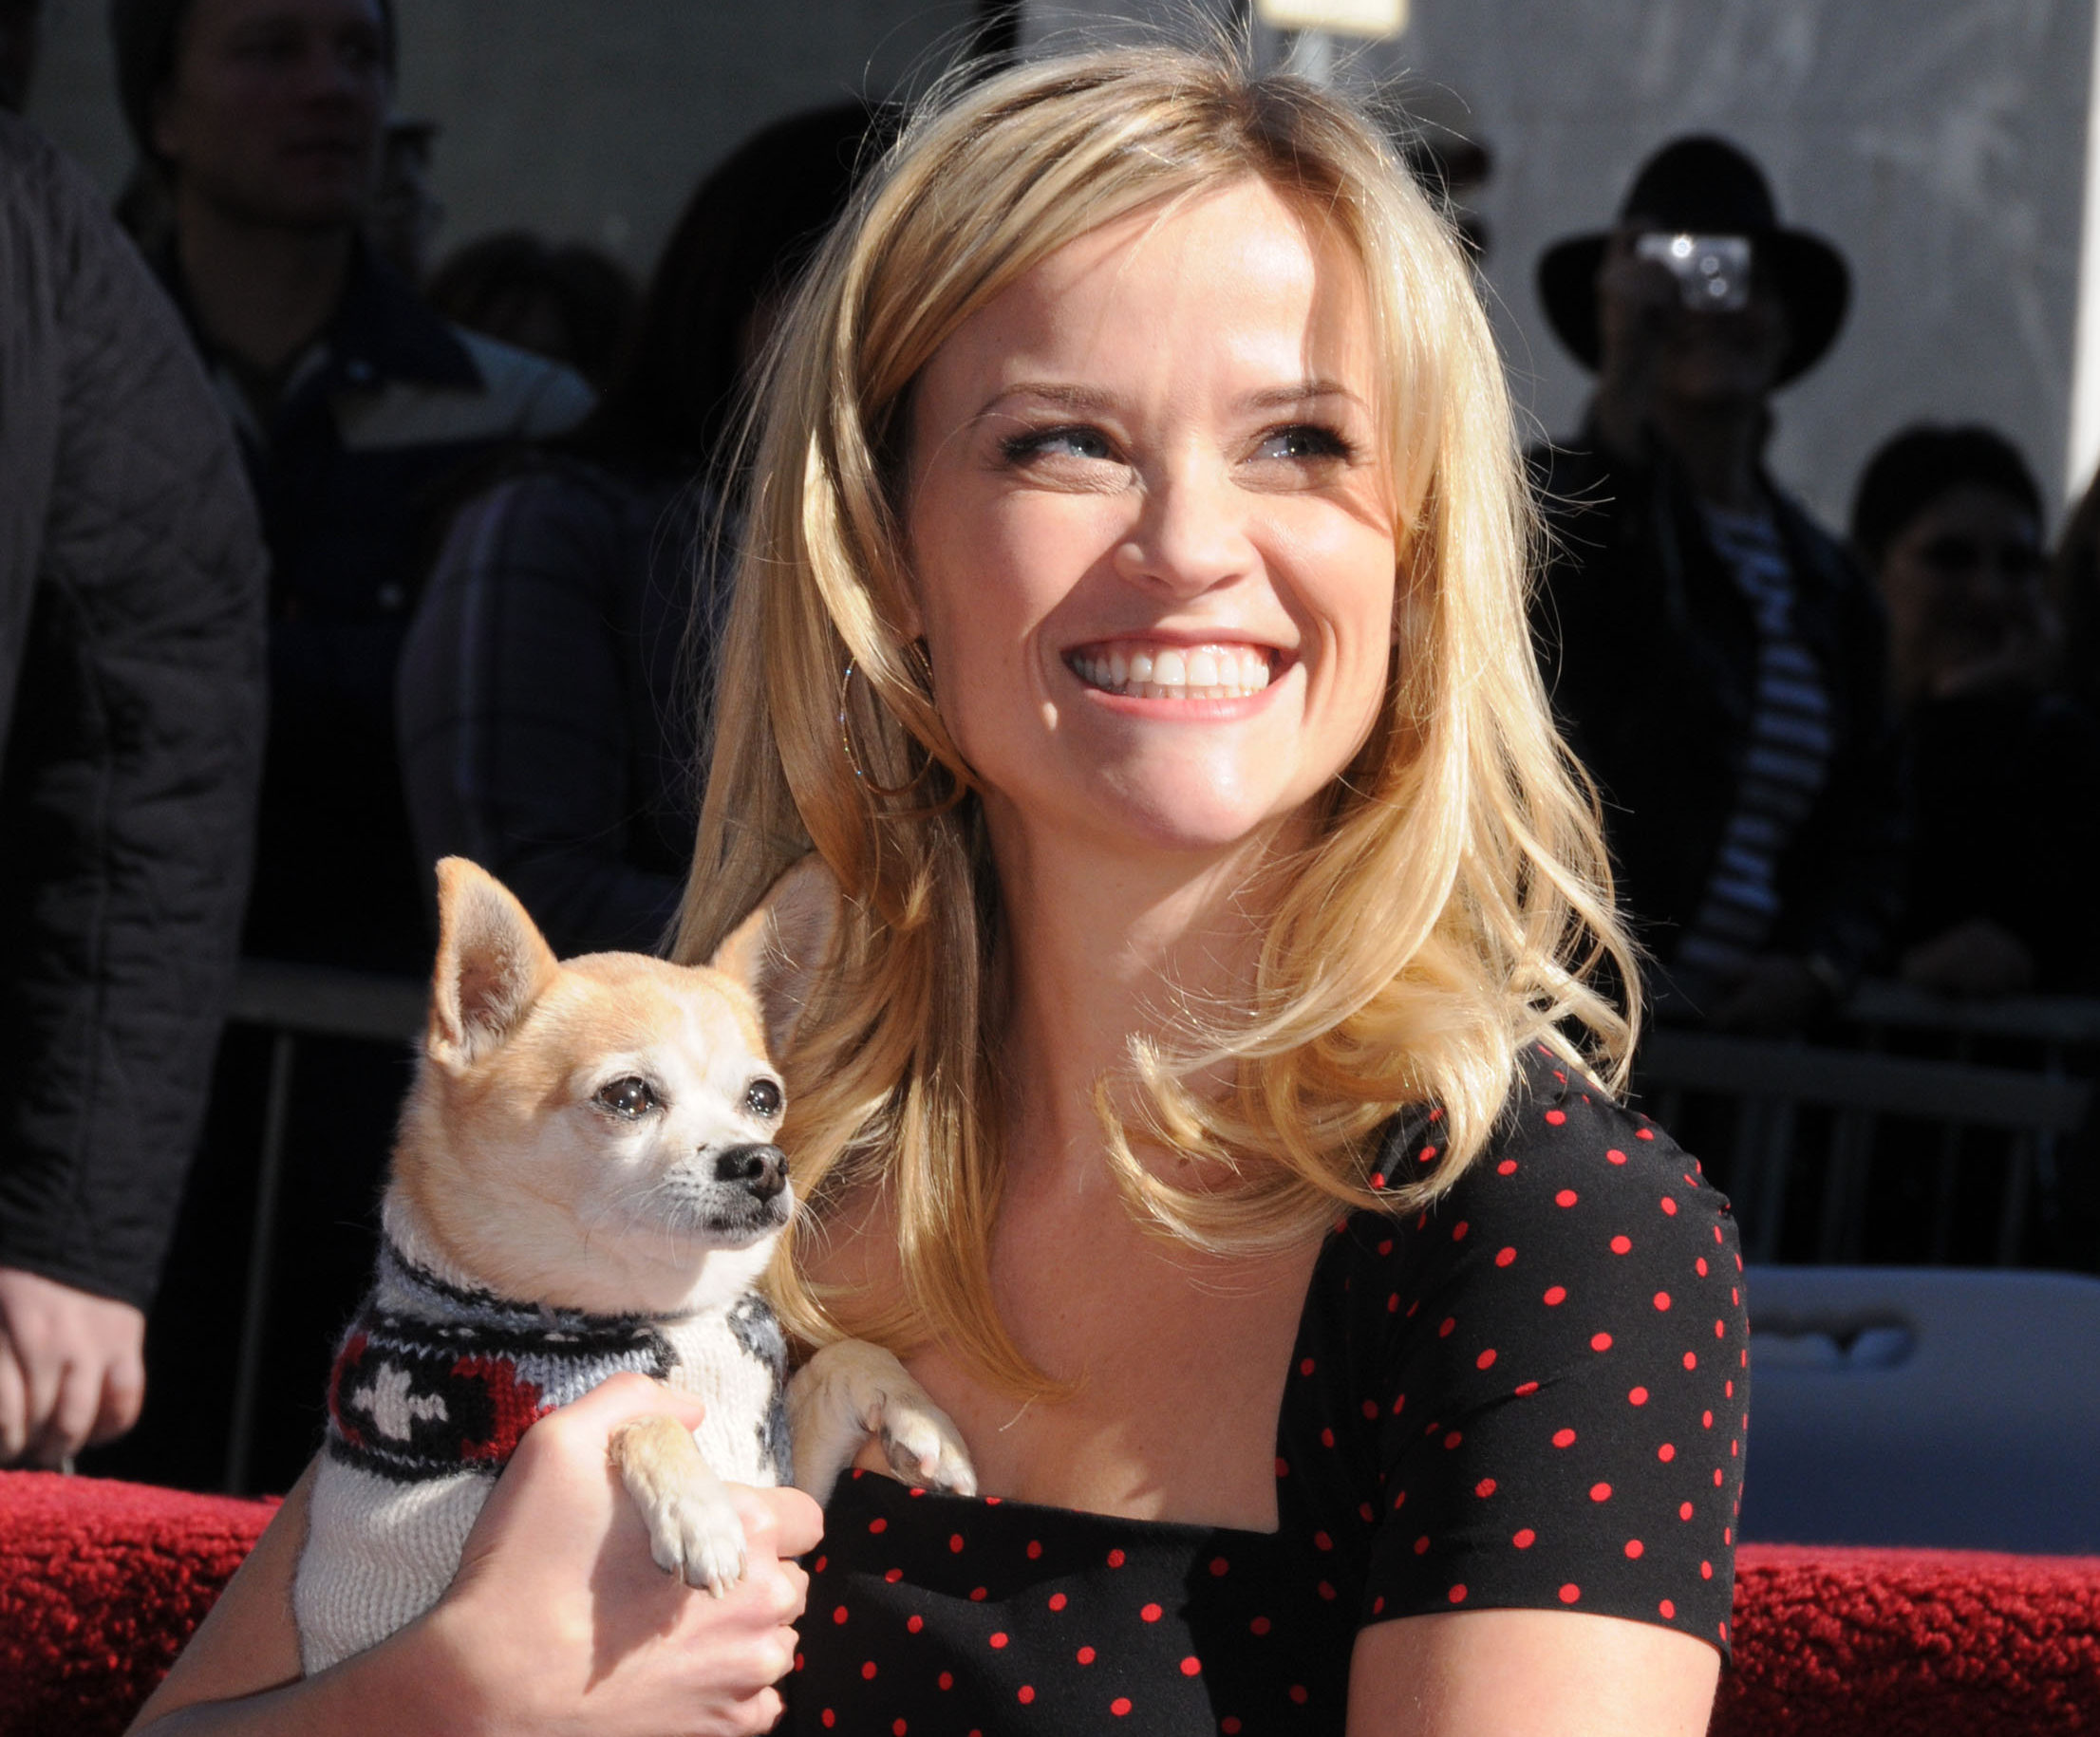 Reese Witherspoon posts #tbt, shows us what Elle Woods would look like as a little girl